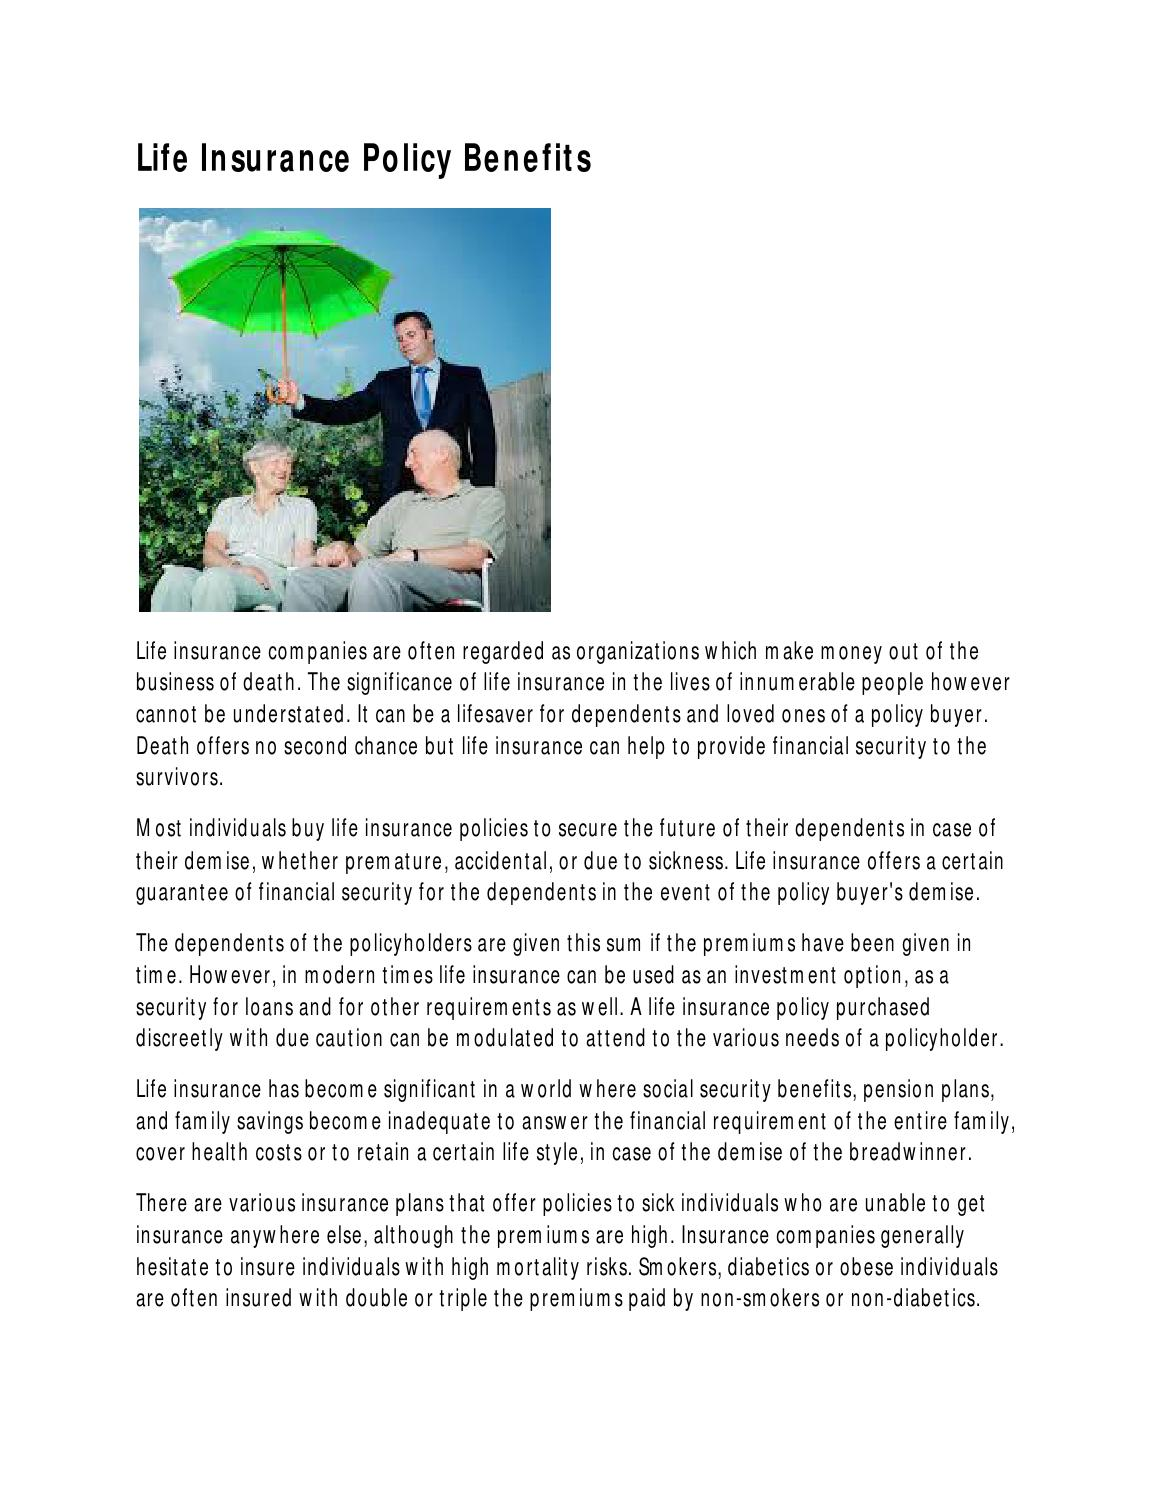 Life Insurance Policy Benefits by Hami Rabbani - Issuu